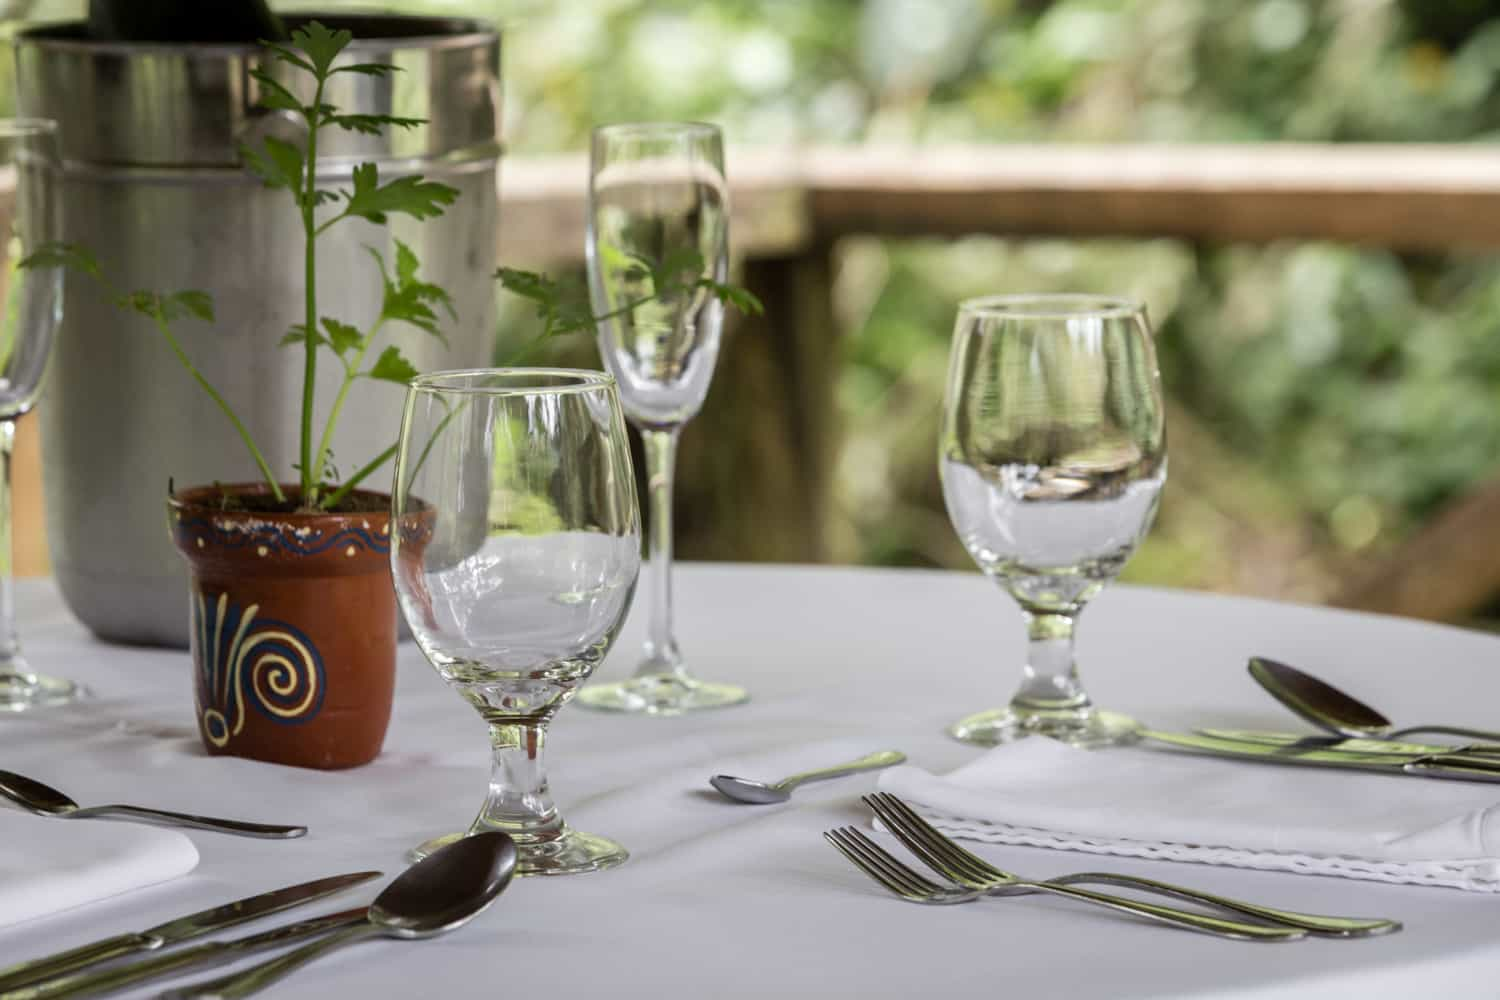 Table set for just marred couple in cloud forest gazebo.